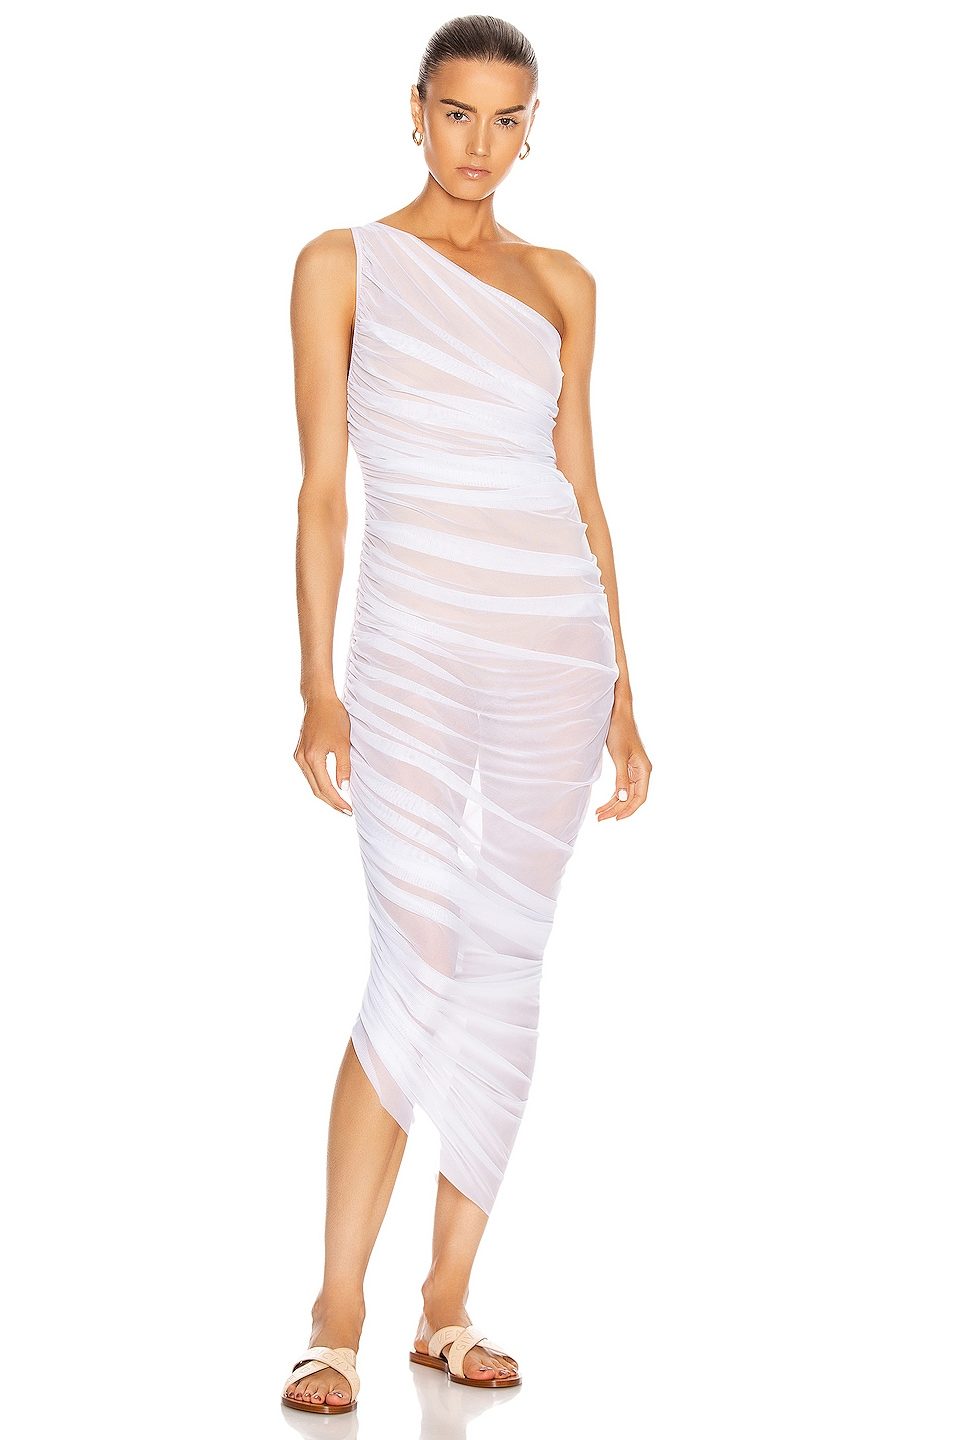 Image 1 of Norma Kamali for FWRD Diana Gown in White & Nude Mesh